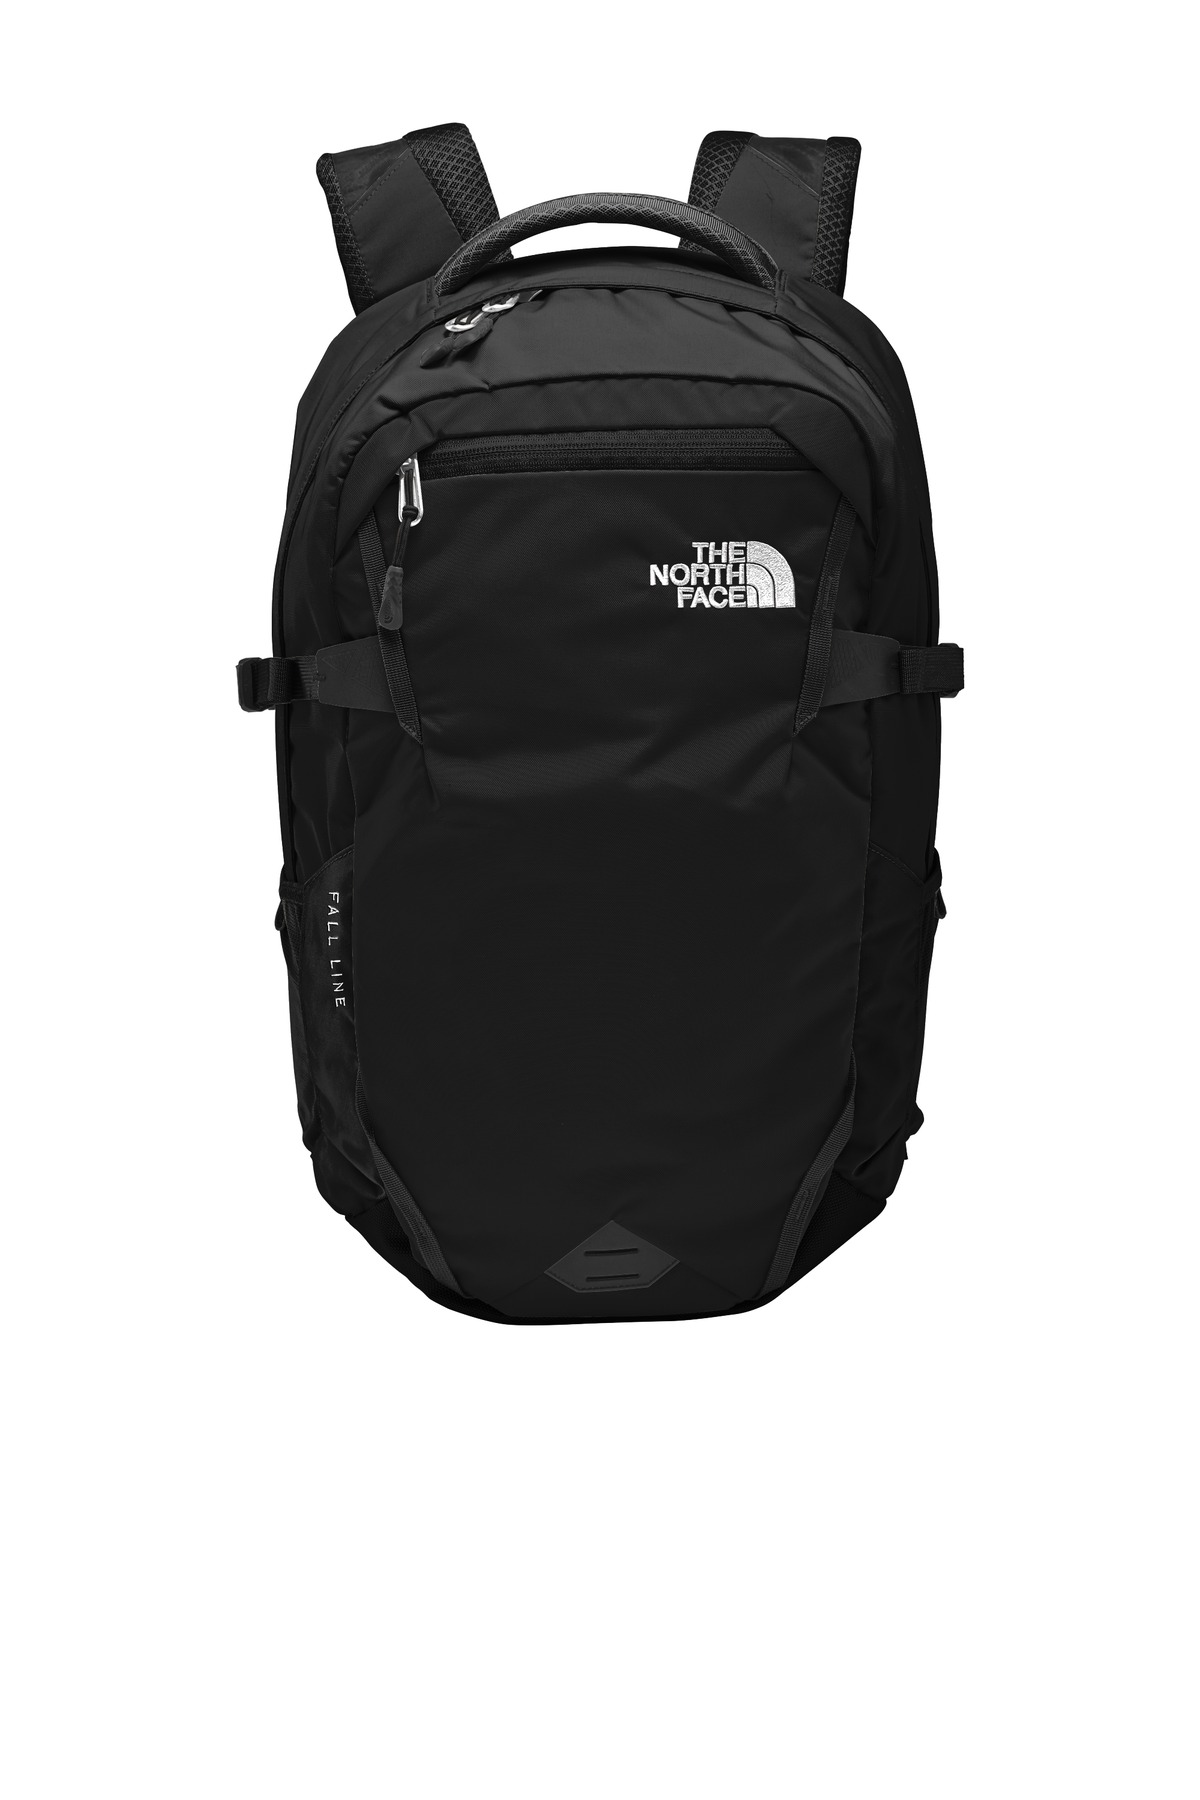 The North Face  ®  Fall Line Backpack. NF0A3KX7 - TNF Black